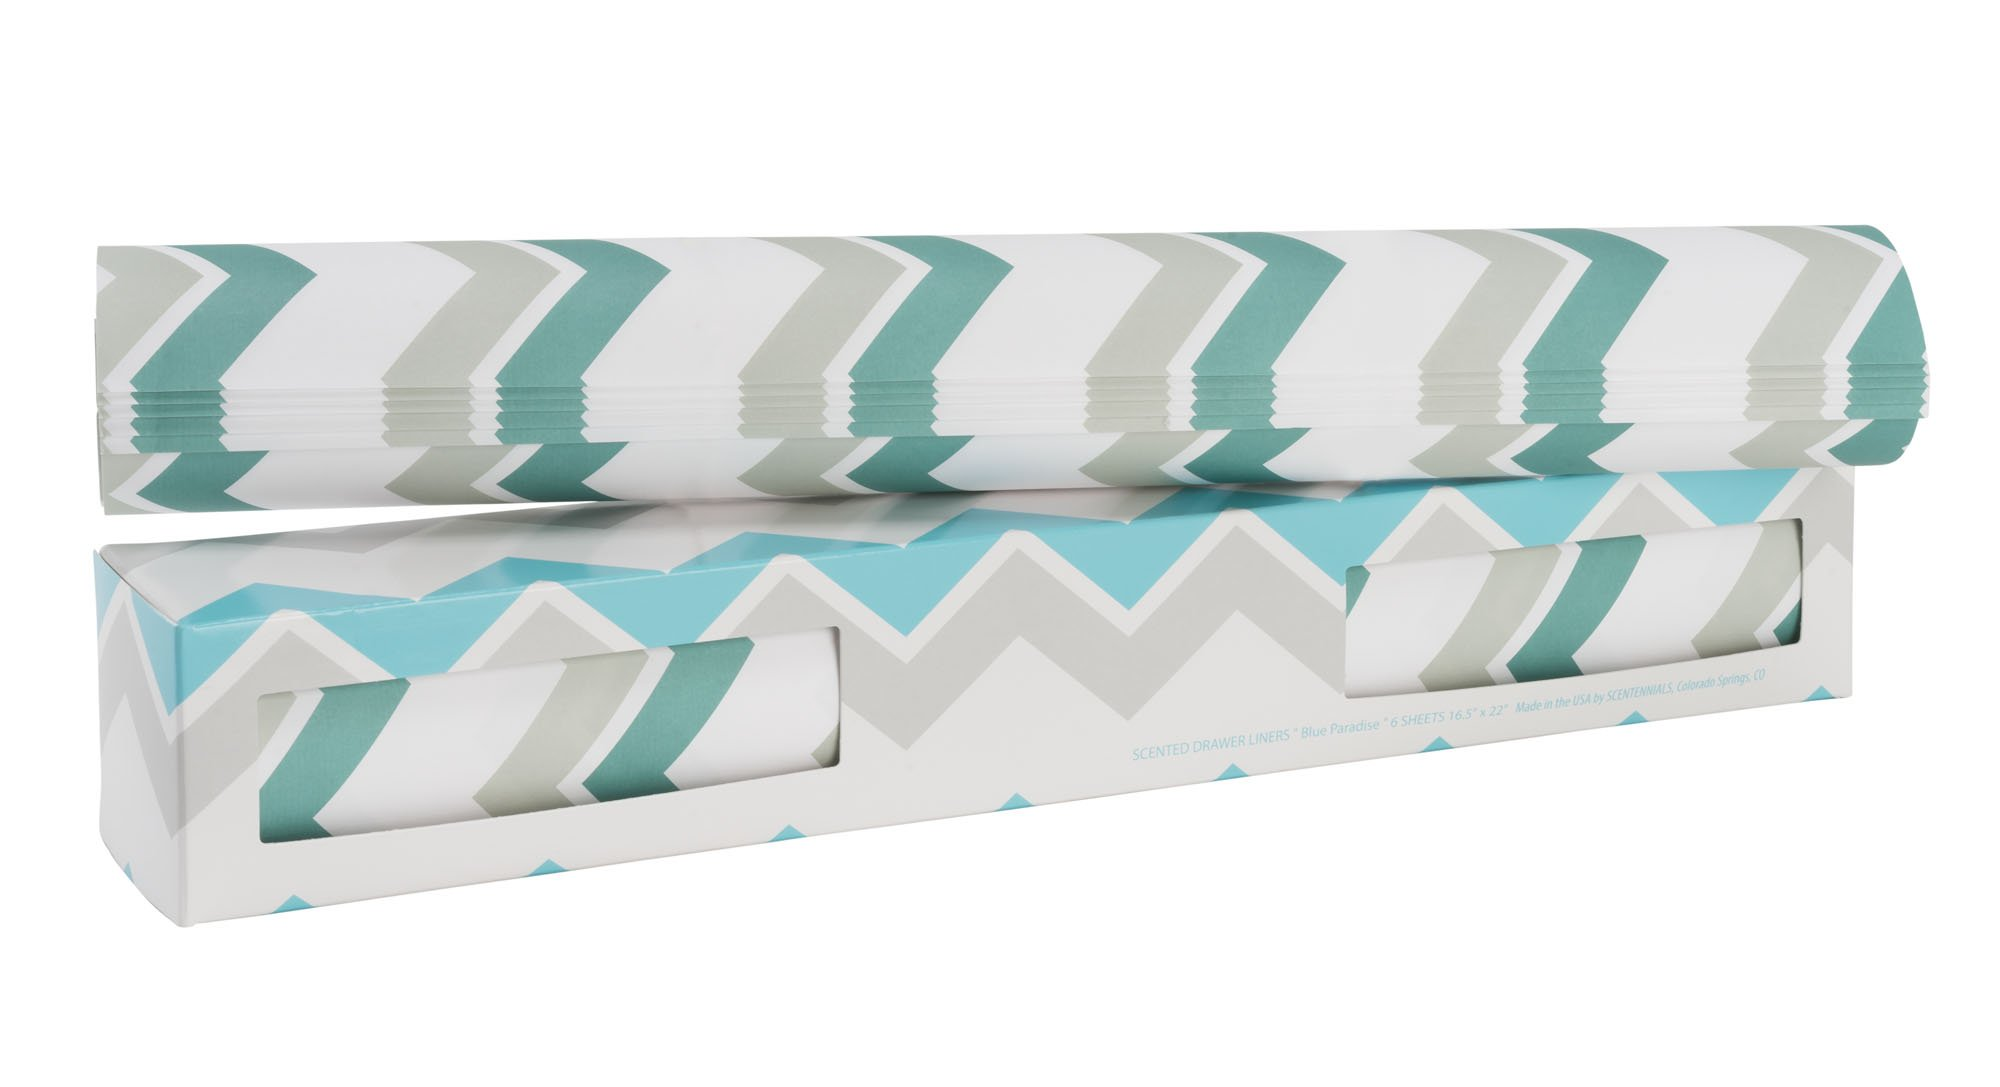 Scentennials Blue Paradise (6 Sheets) Scented Fragrant Shelf & Drawer Liners 16.5'' x 22'' - Great for Dresser, Kitchen, Bathroom, Vanity & Linen Closet by Scentennials